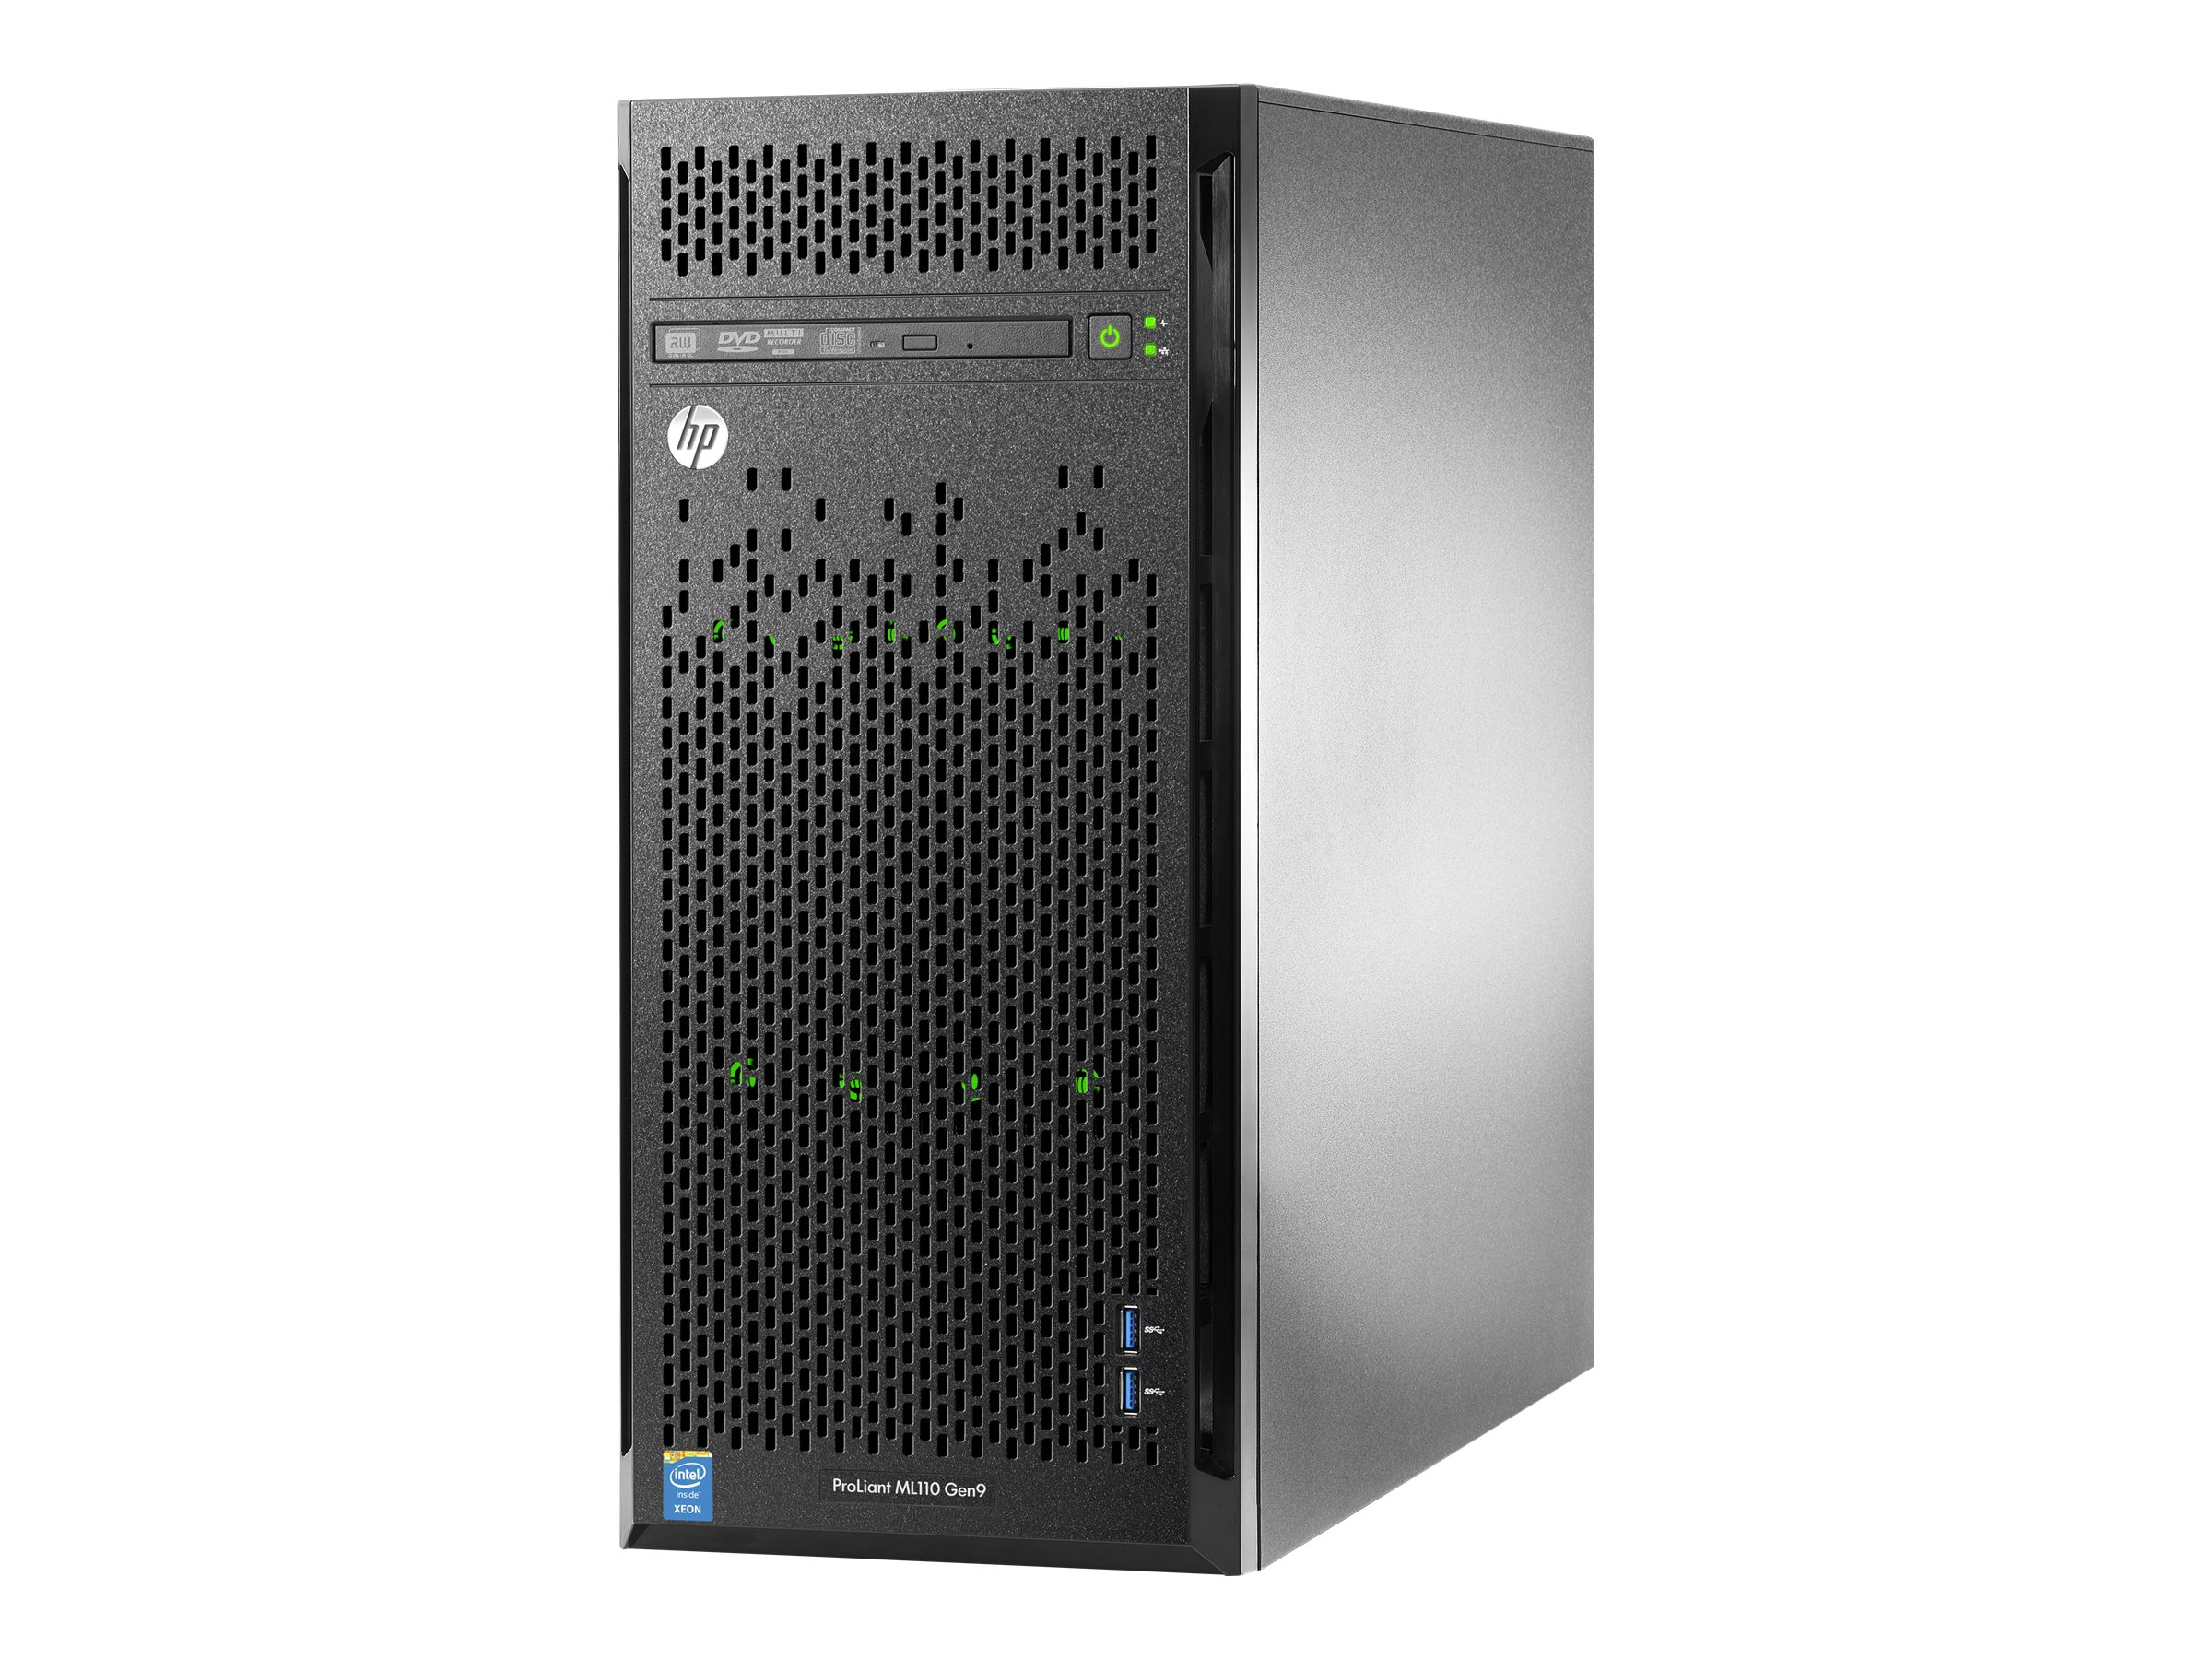 HPE ProLiant ML110 Gen9 Intel 1.6GHz Xeon, 777160-001, 19337818, Servers